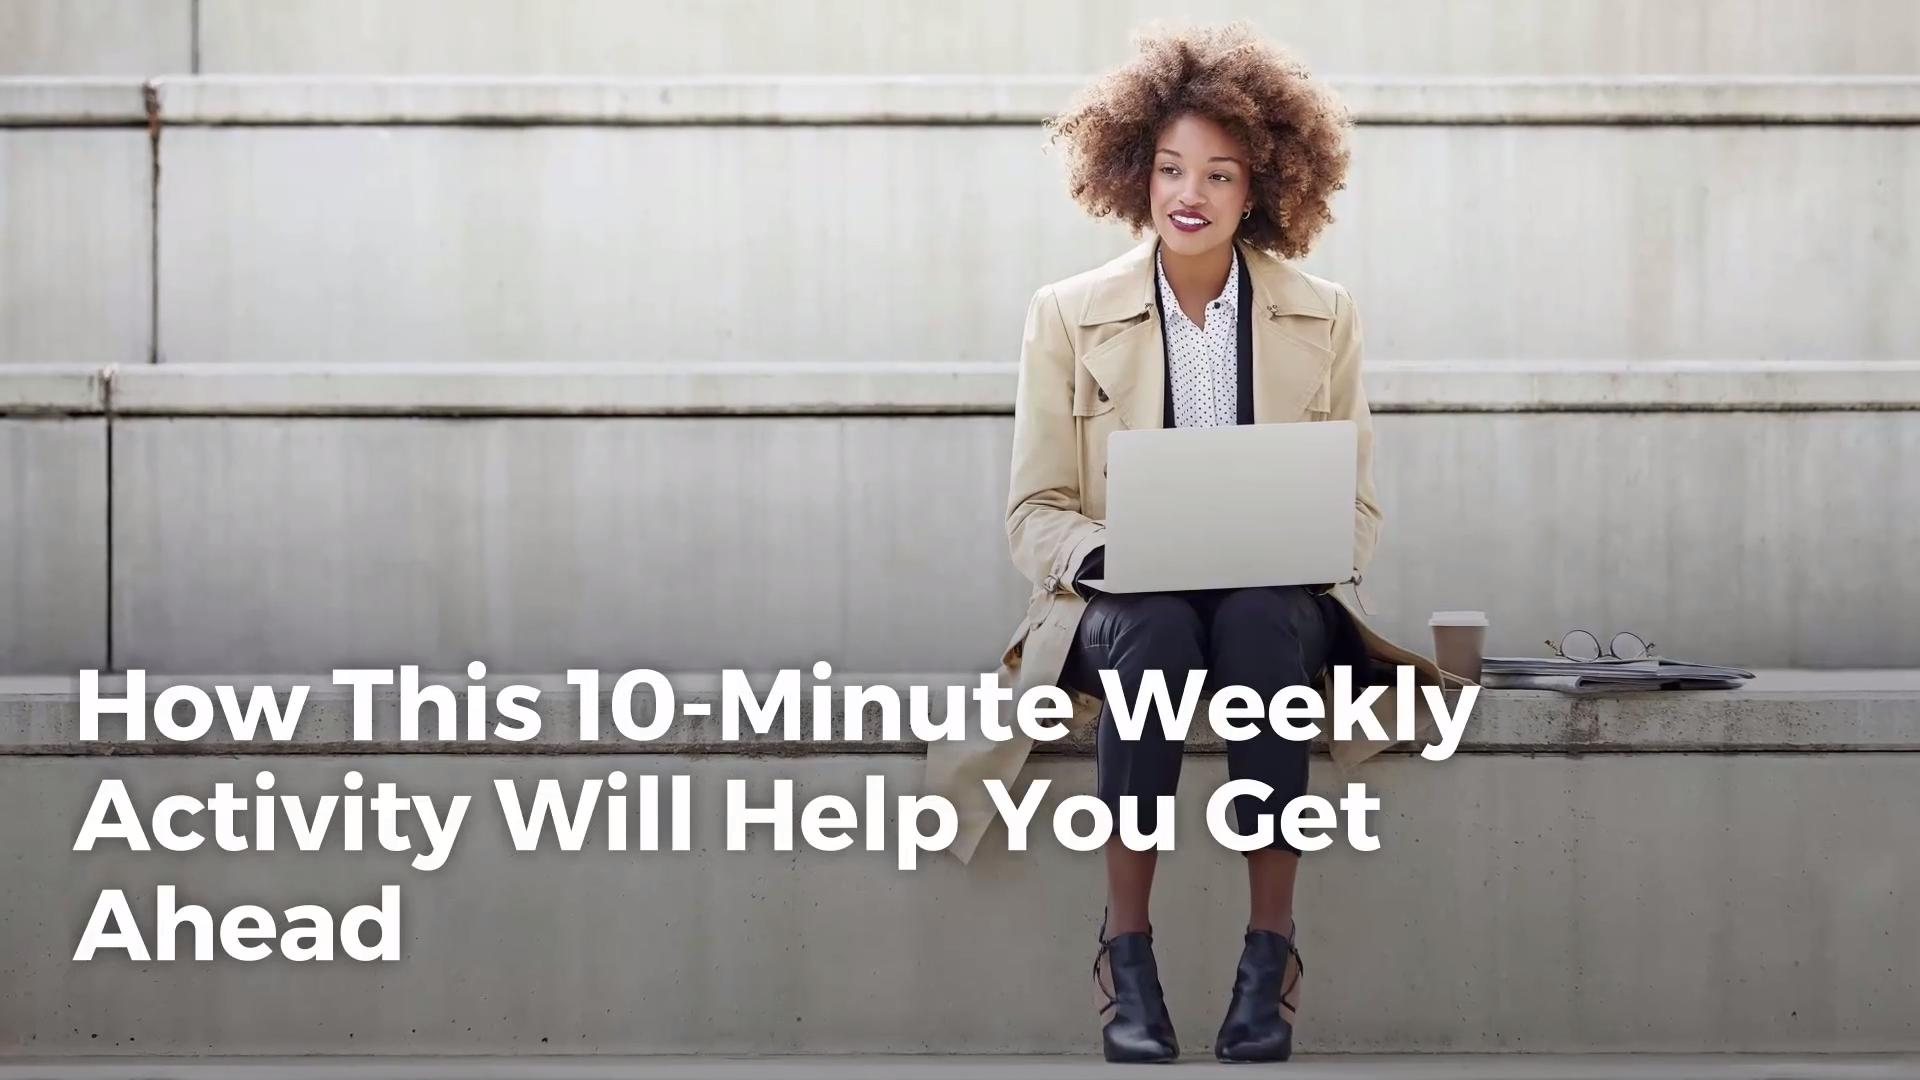 How This 10-Minute Weekly Activity Will Help You Get Ahead